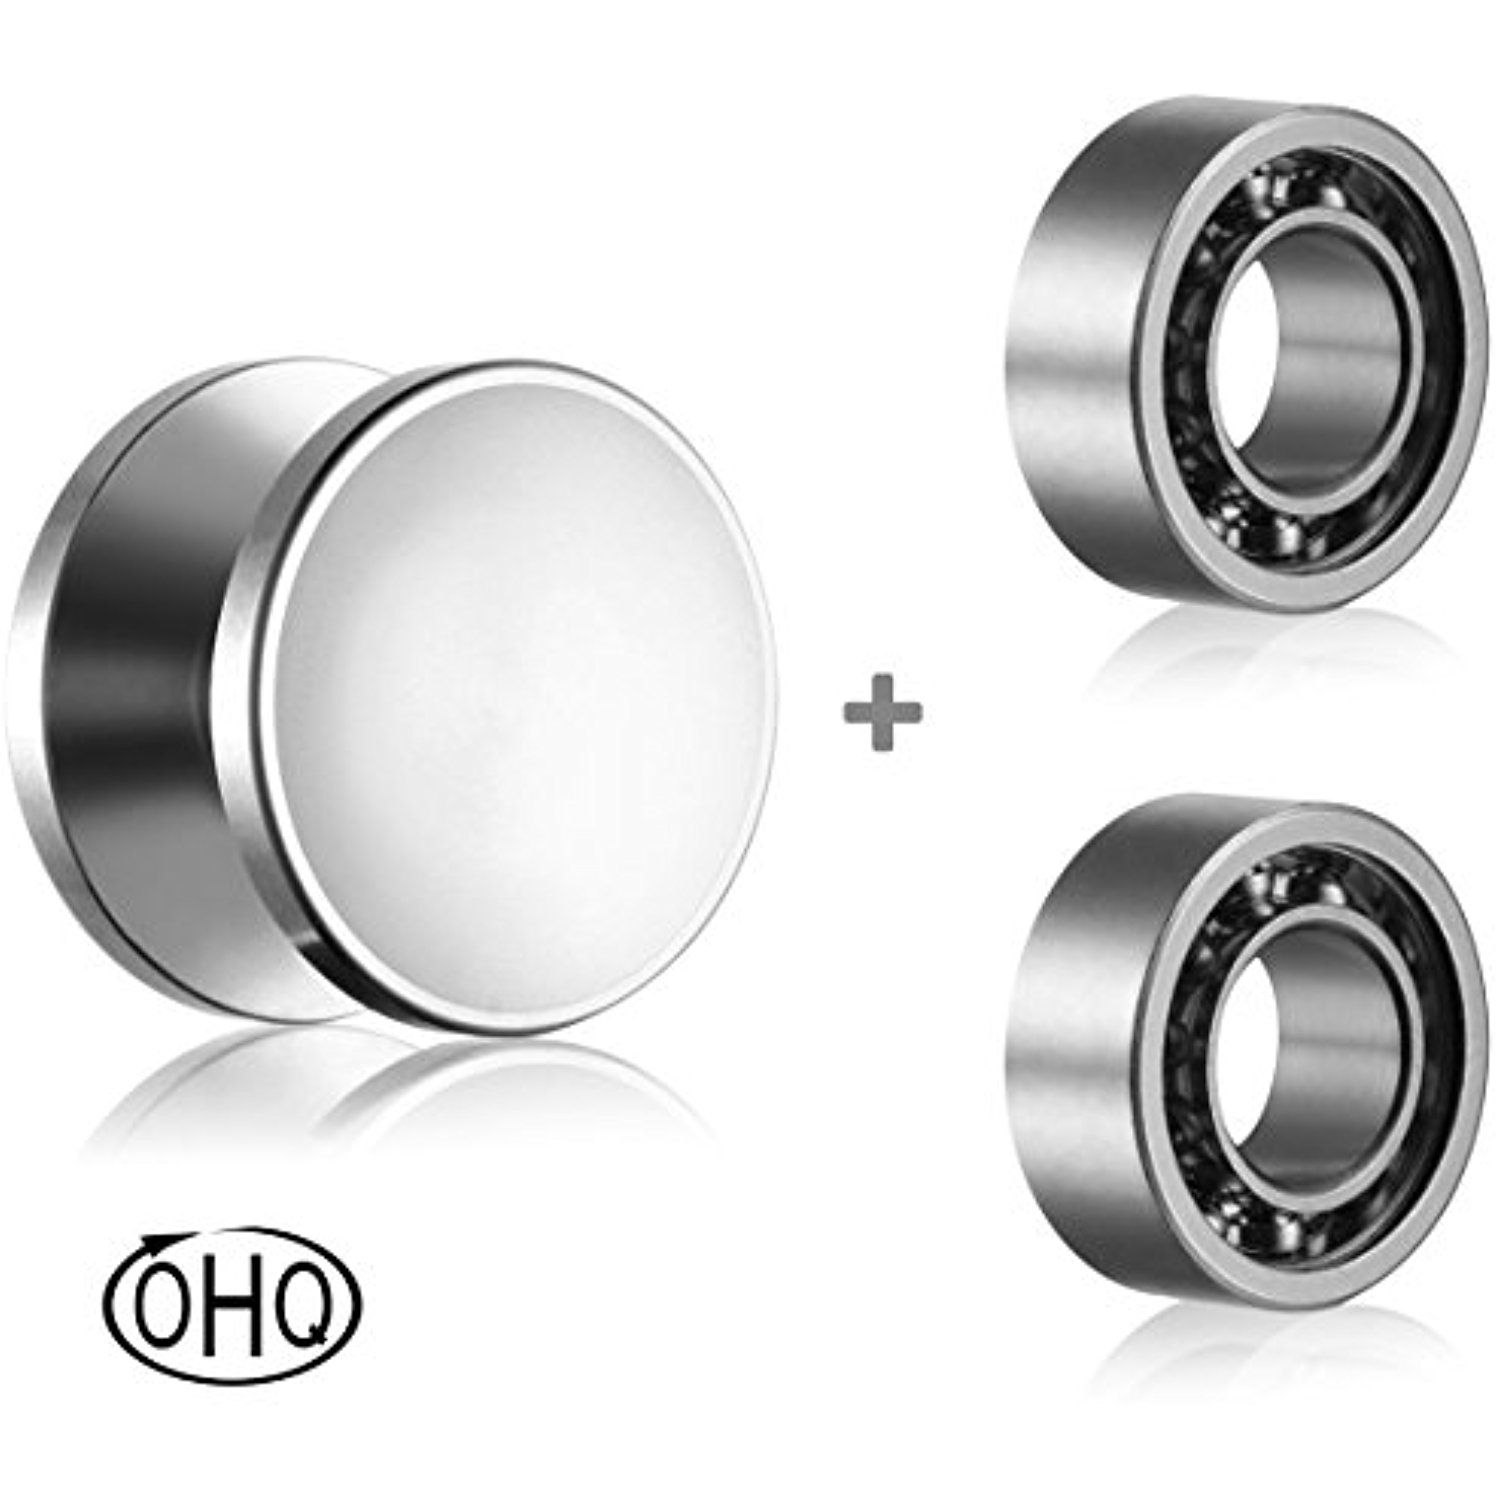 Fidget Spinner Caps and R188 Bearings Set - Replacement Parts for